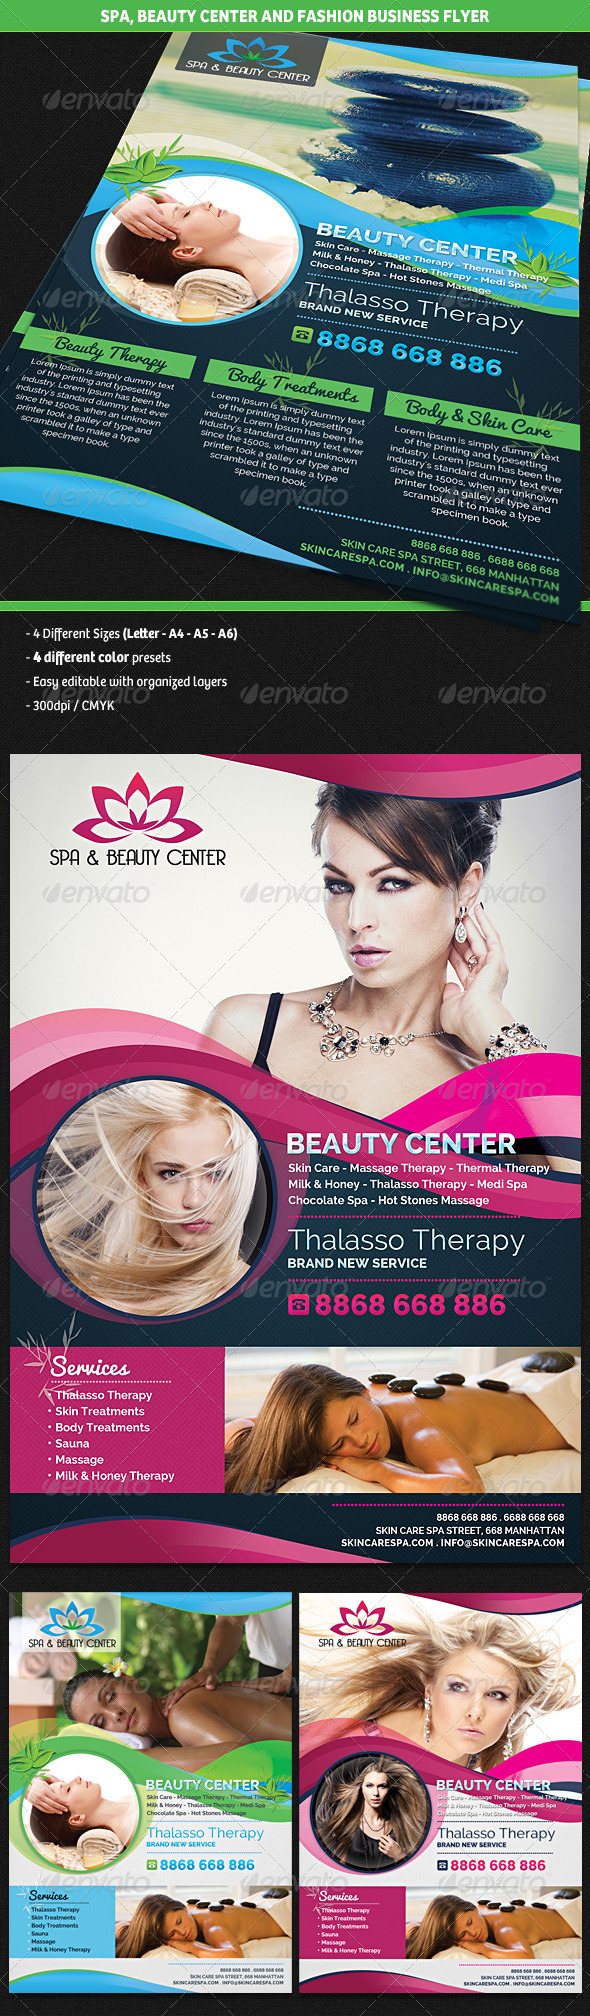 Spa Beauty Fashion Center Business Flyer By Gilledeville Graphicriver